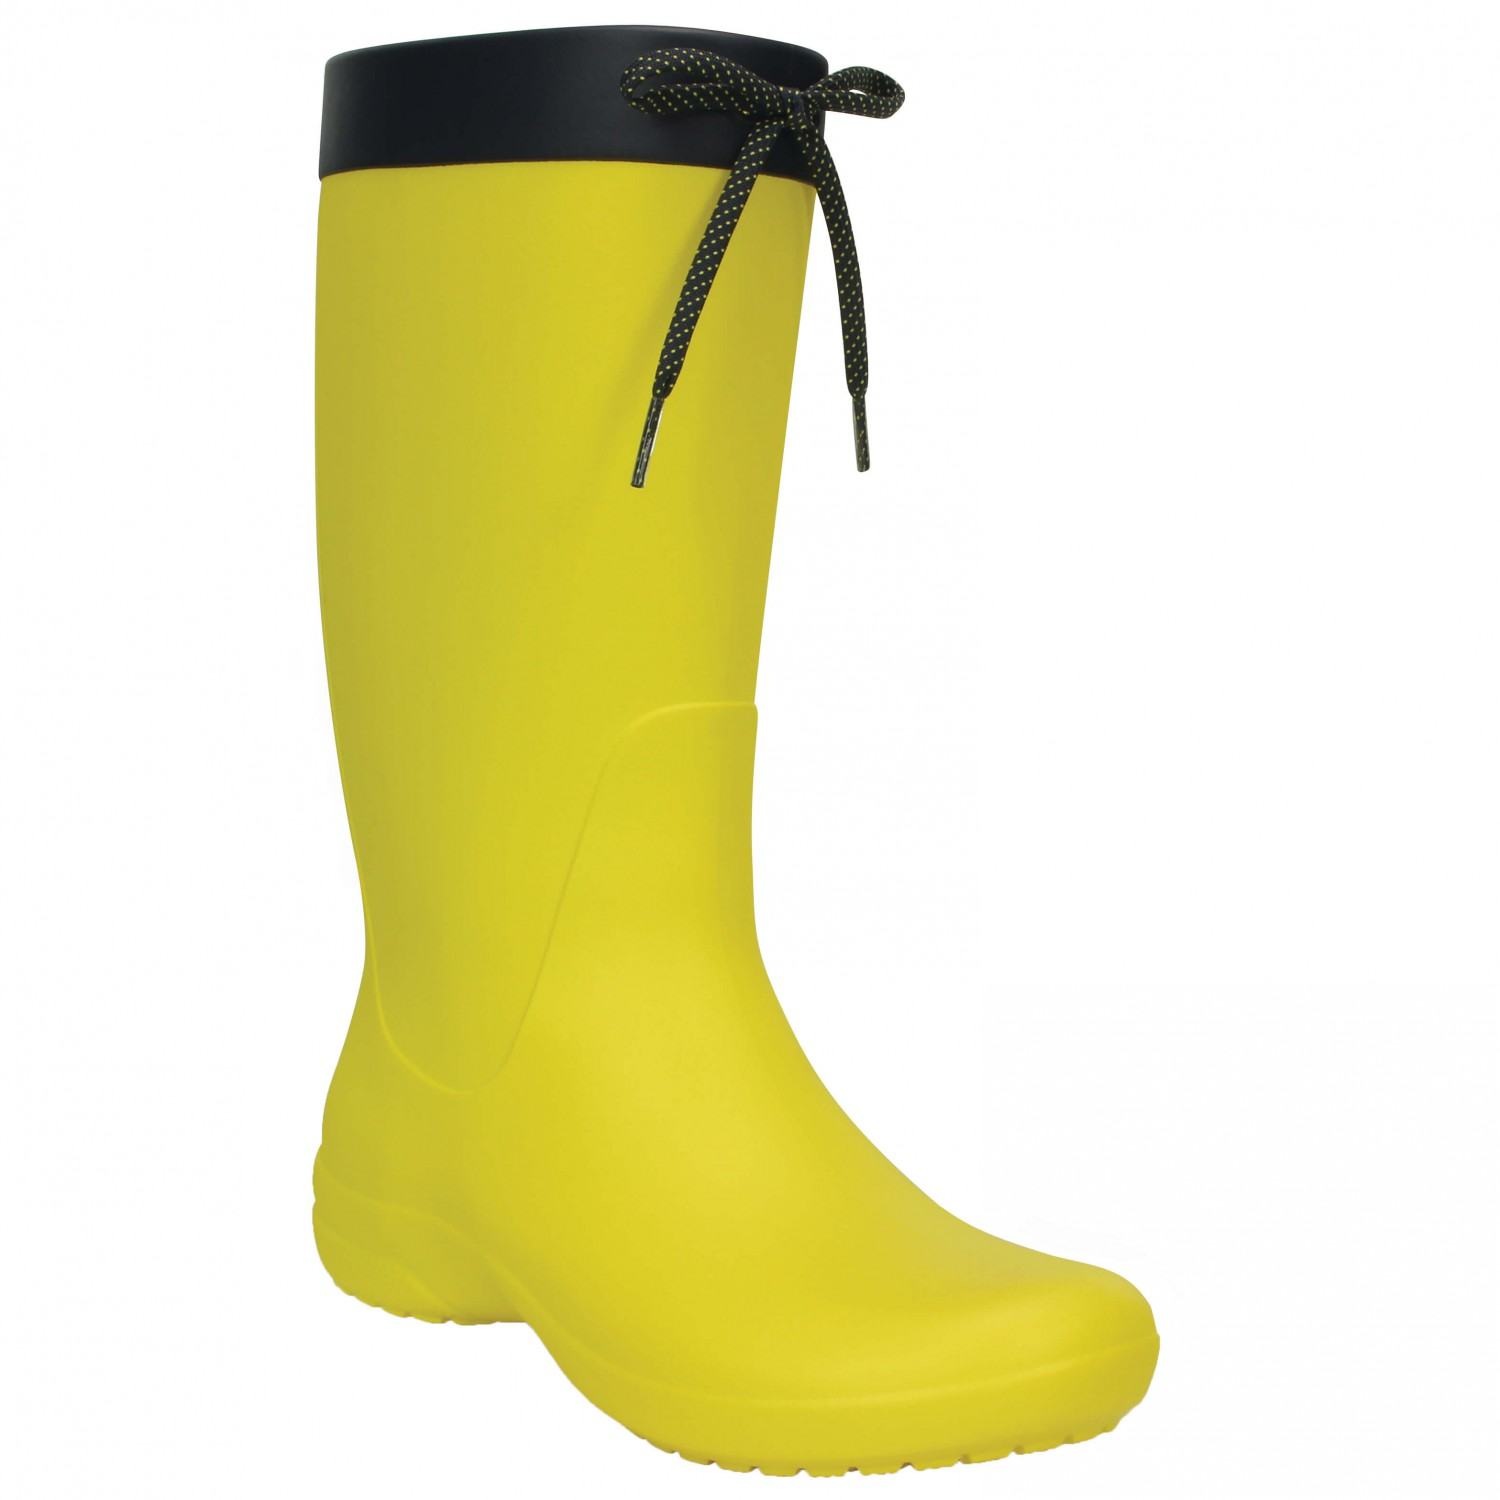 Crocs - Women s Crocs Freesail Rain Boot - Wellington boots ... 2149f452ae